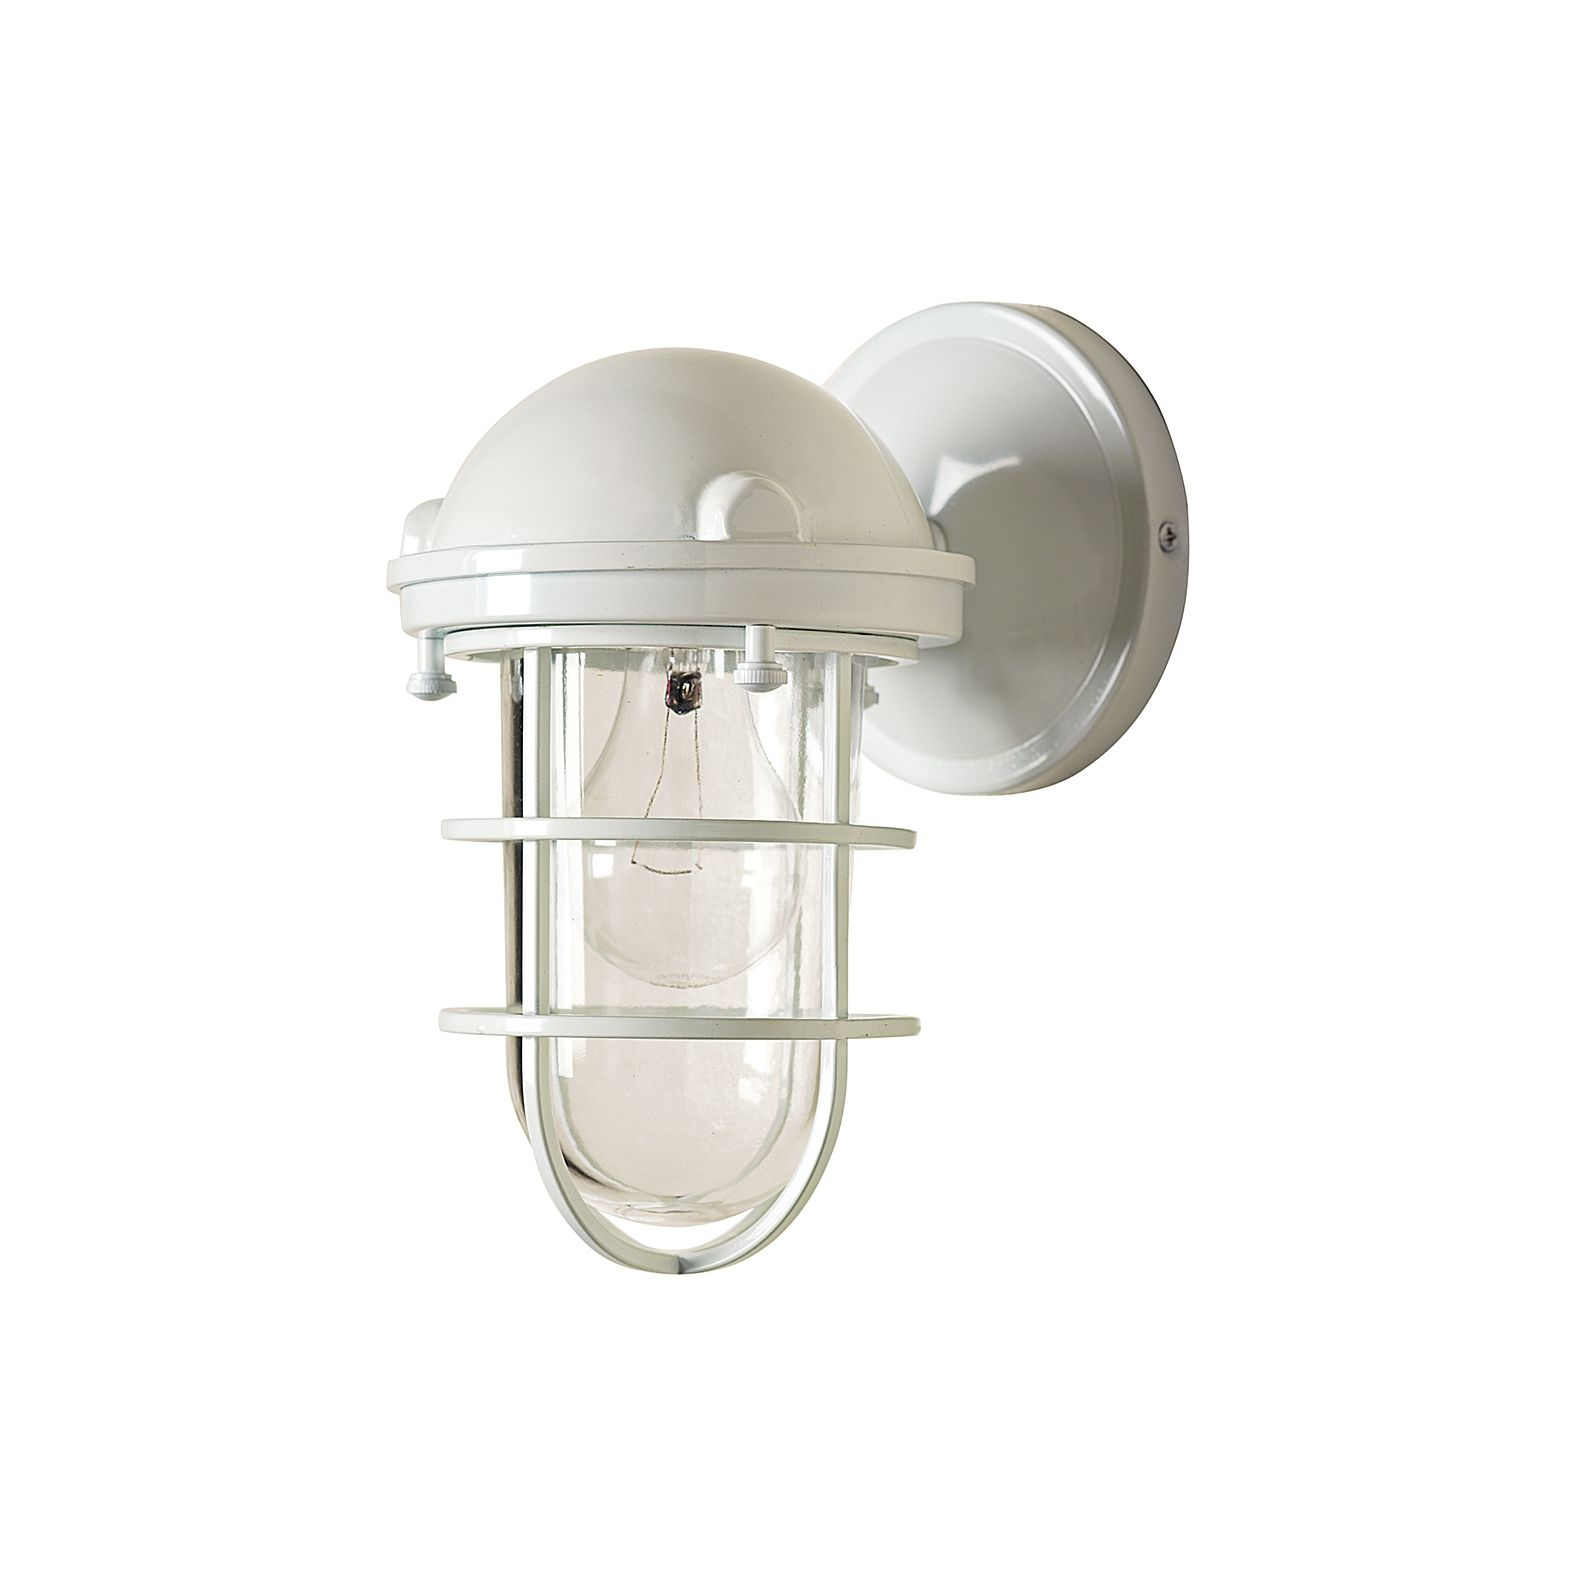 Beacon Sconce White Serena & Lily lighting Pinterest Lights, Bath and Outdoor lighting